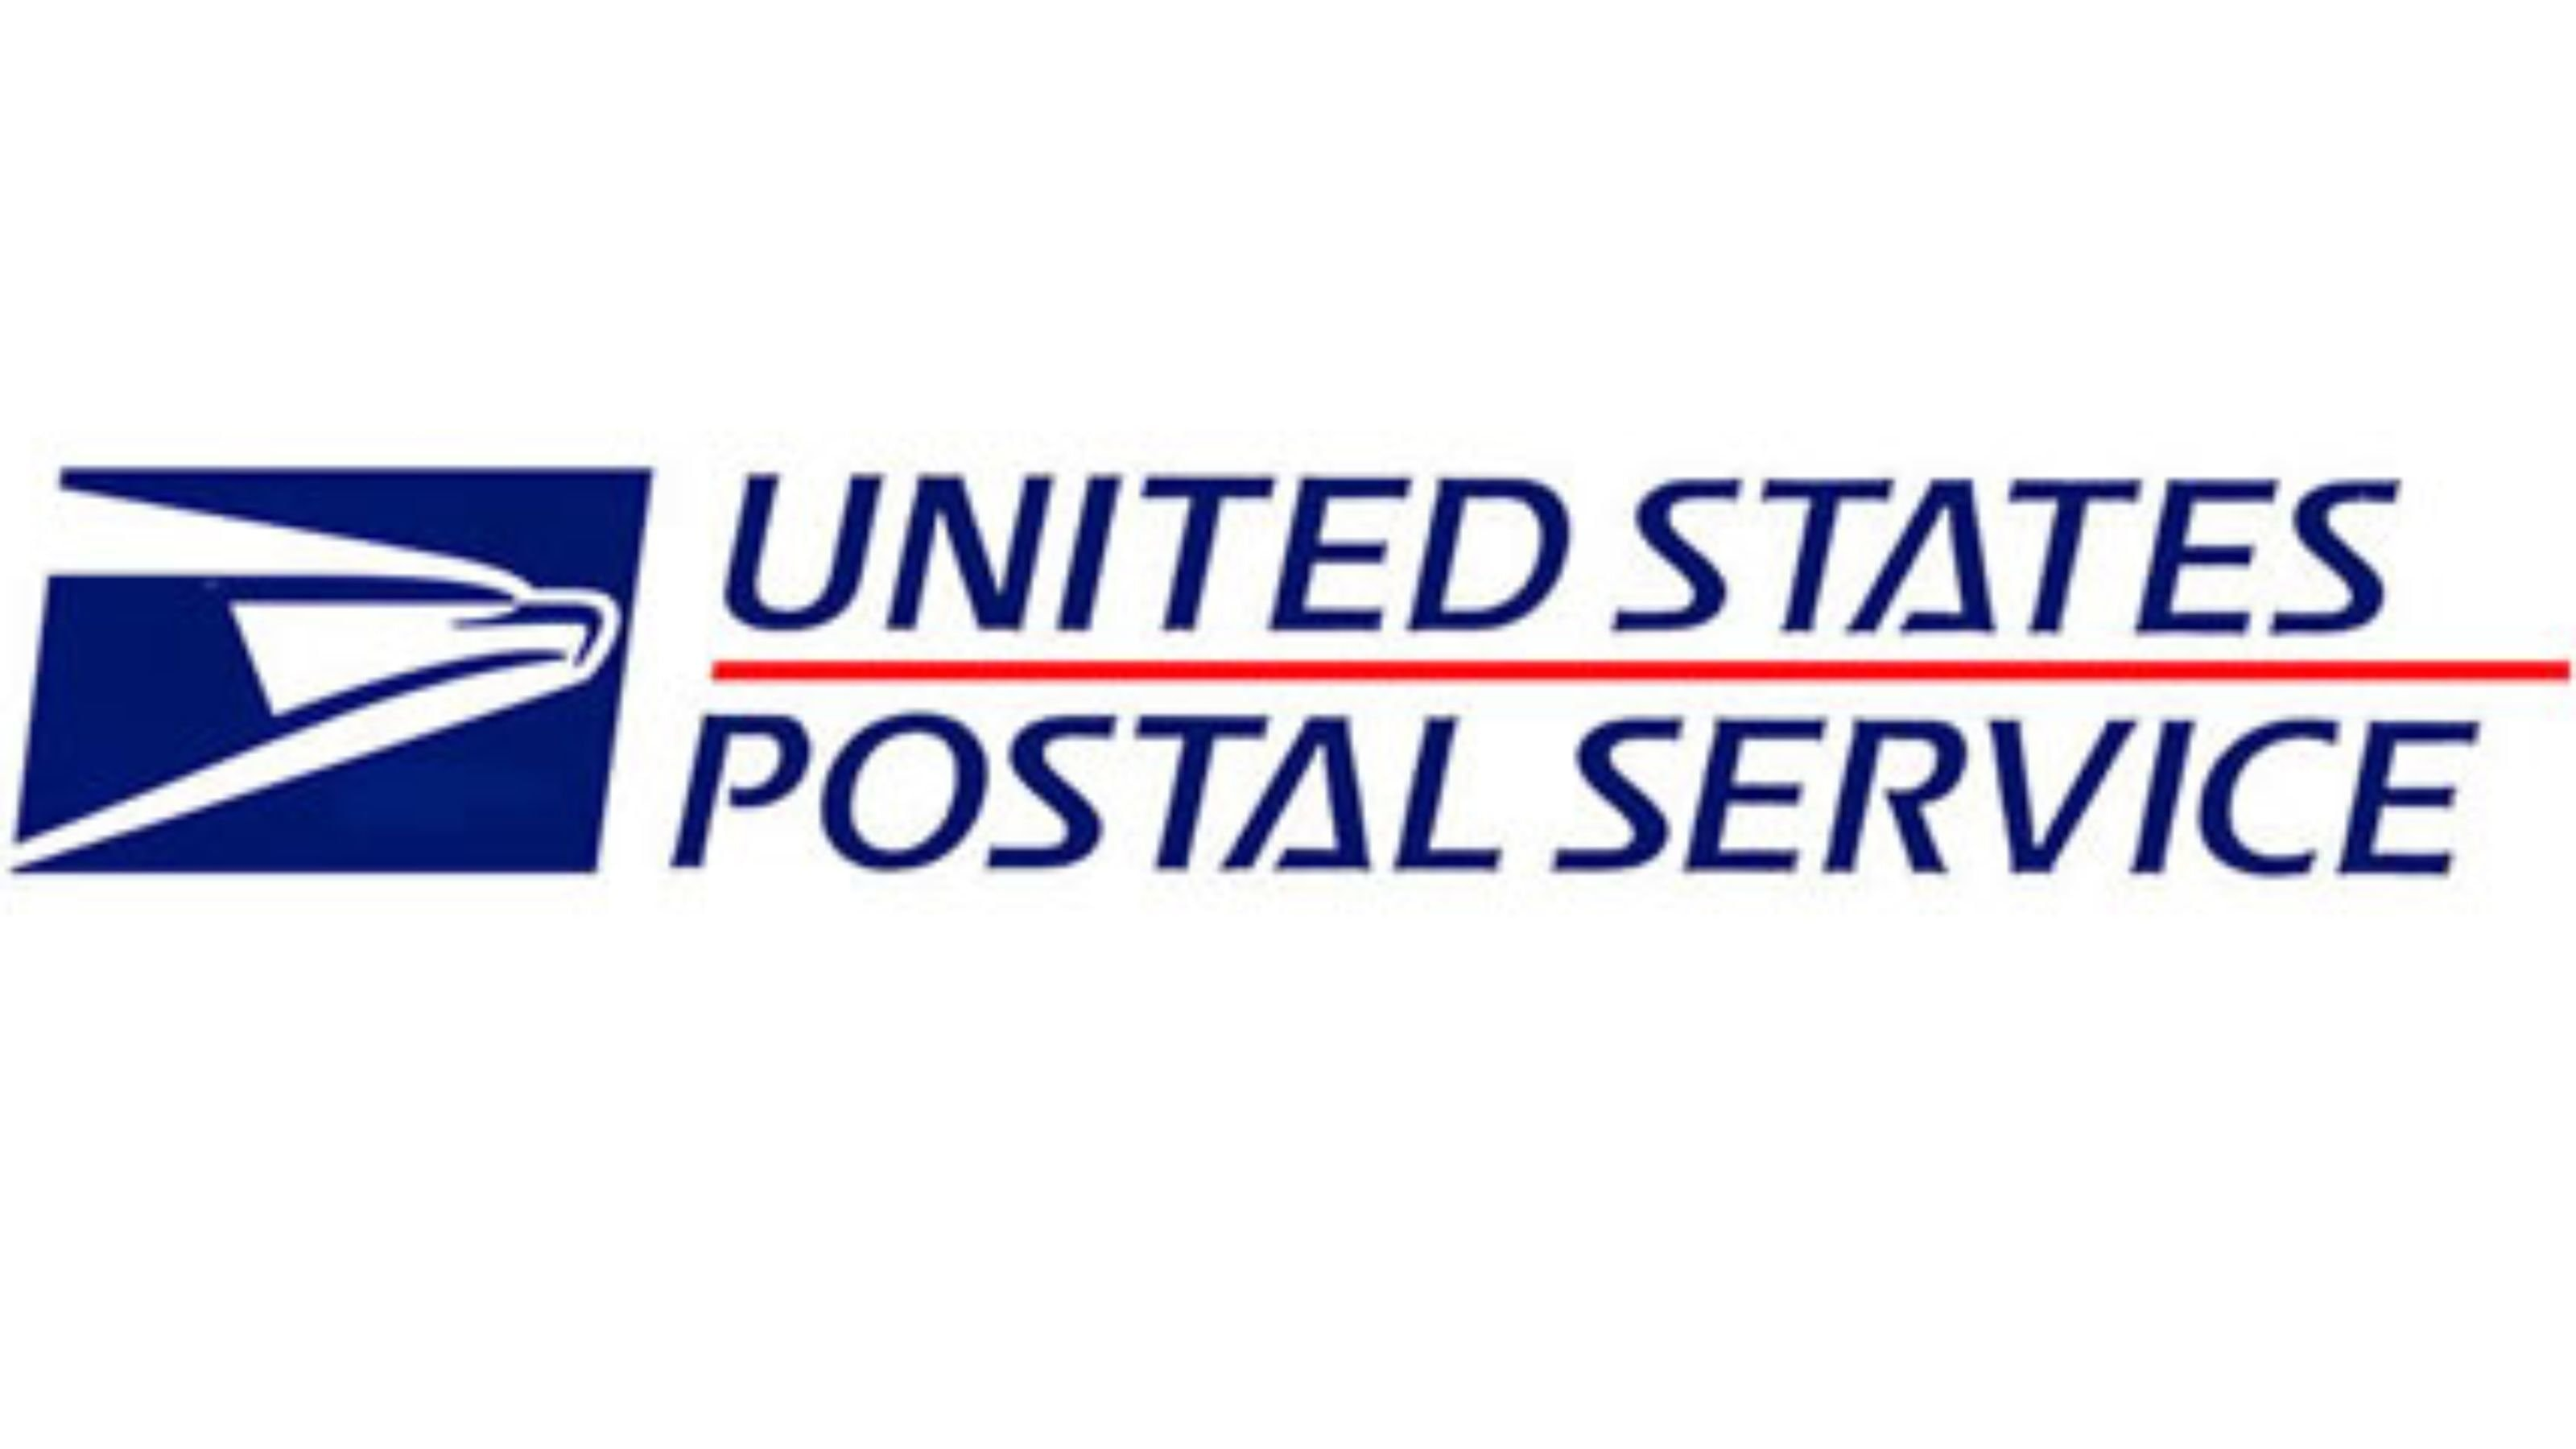 USPS.Com Stamps Coupon Codes 2019 : Up to 20% Off (Free ...